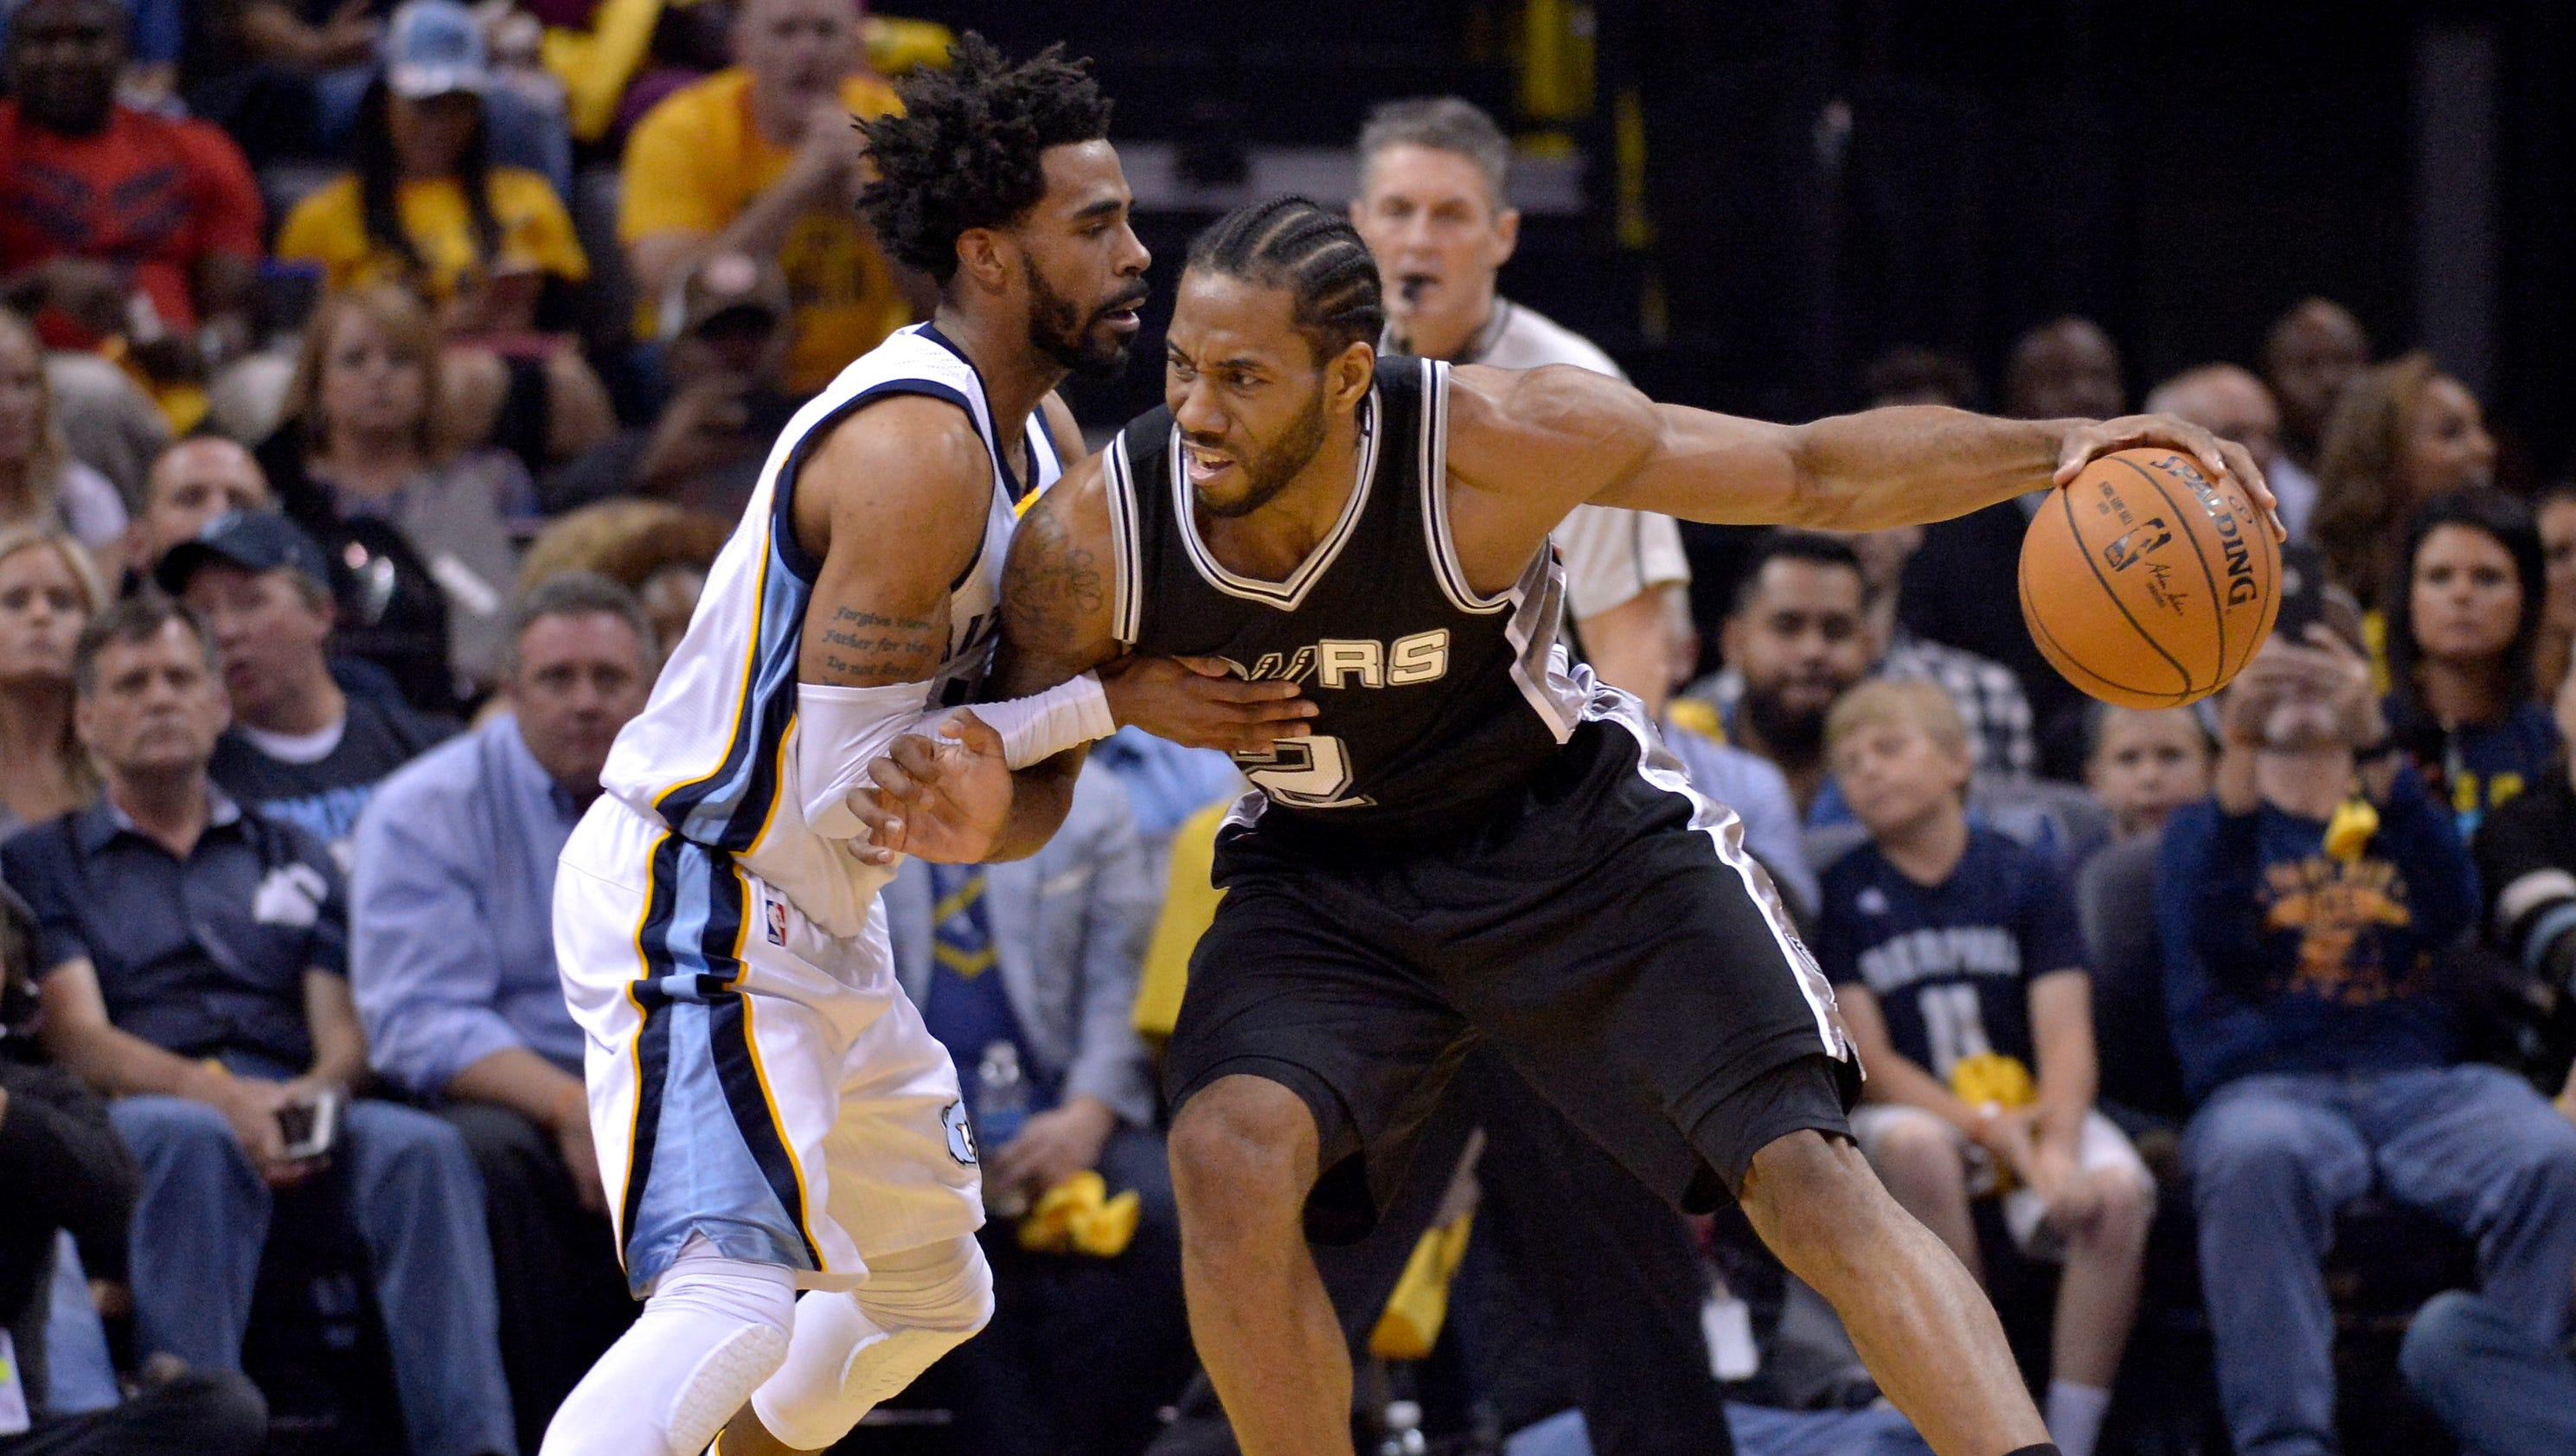 636289345250465280-ap-spurs-grizzlies-basketball-90531422